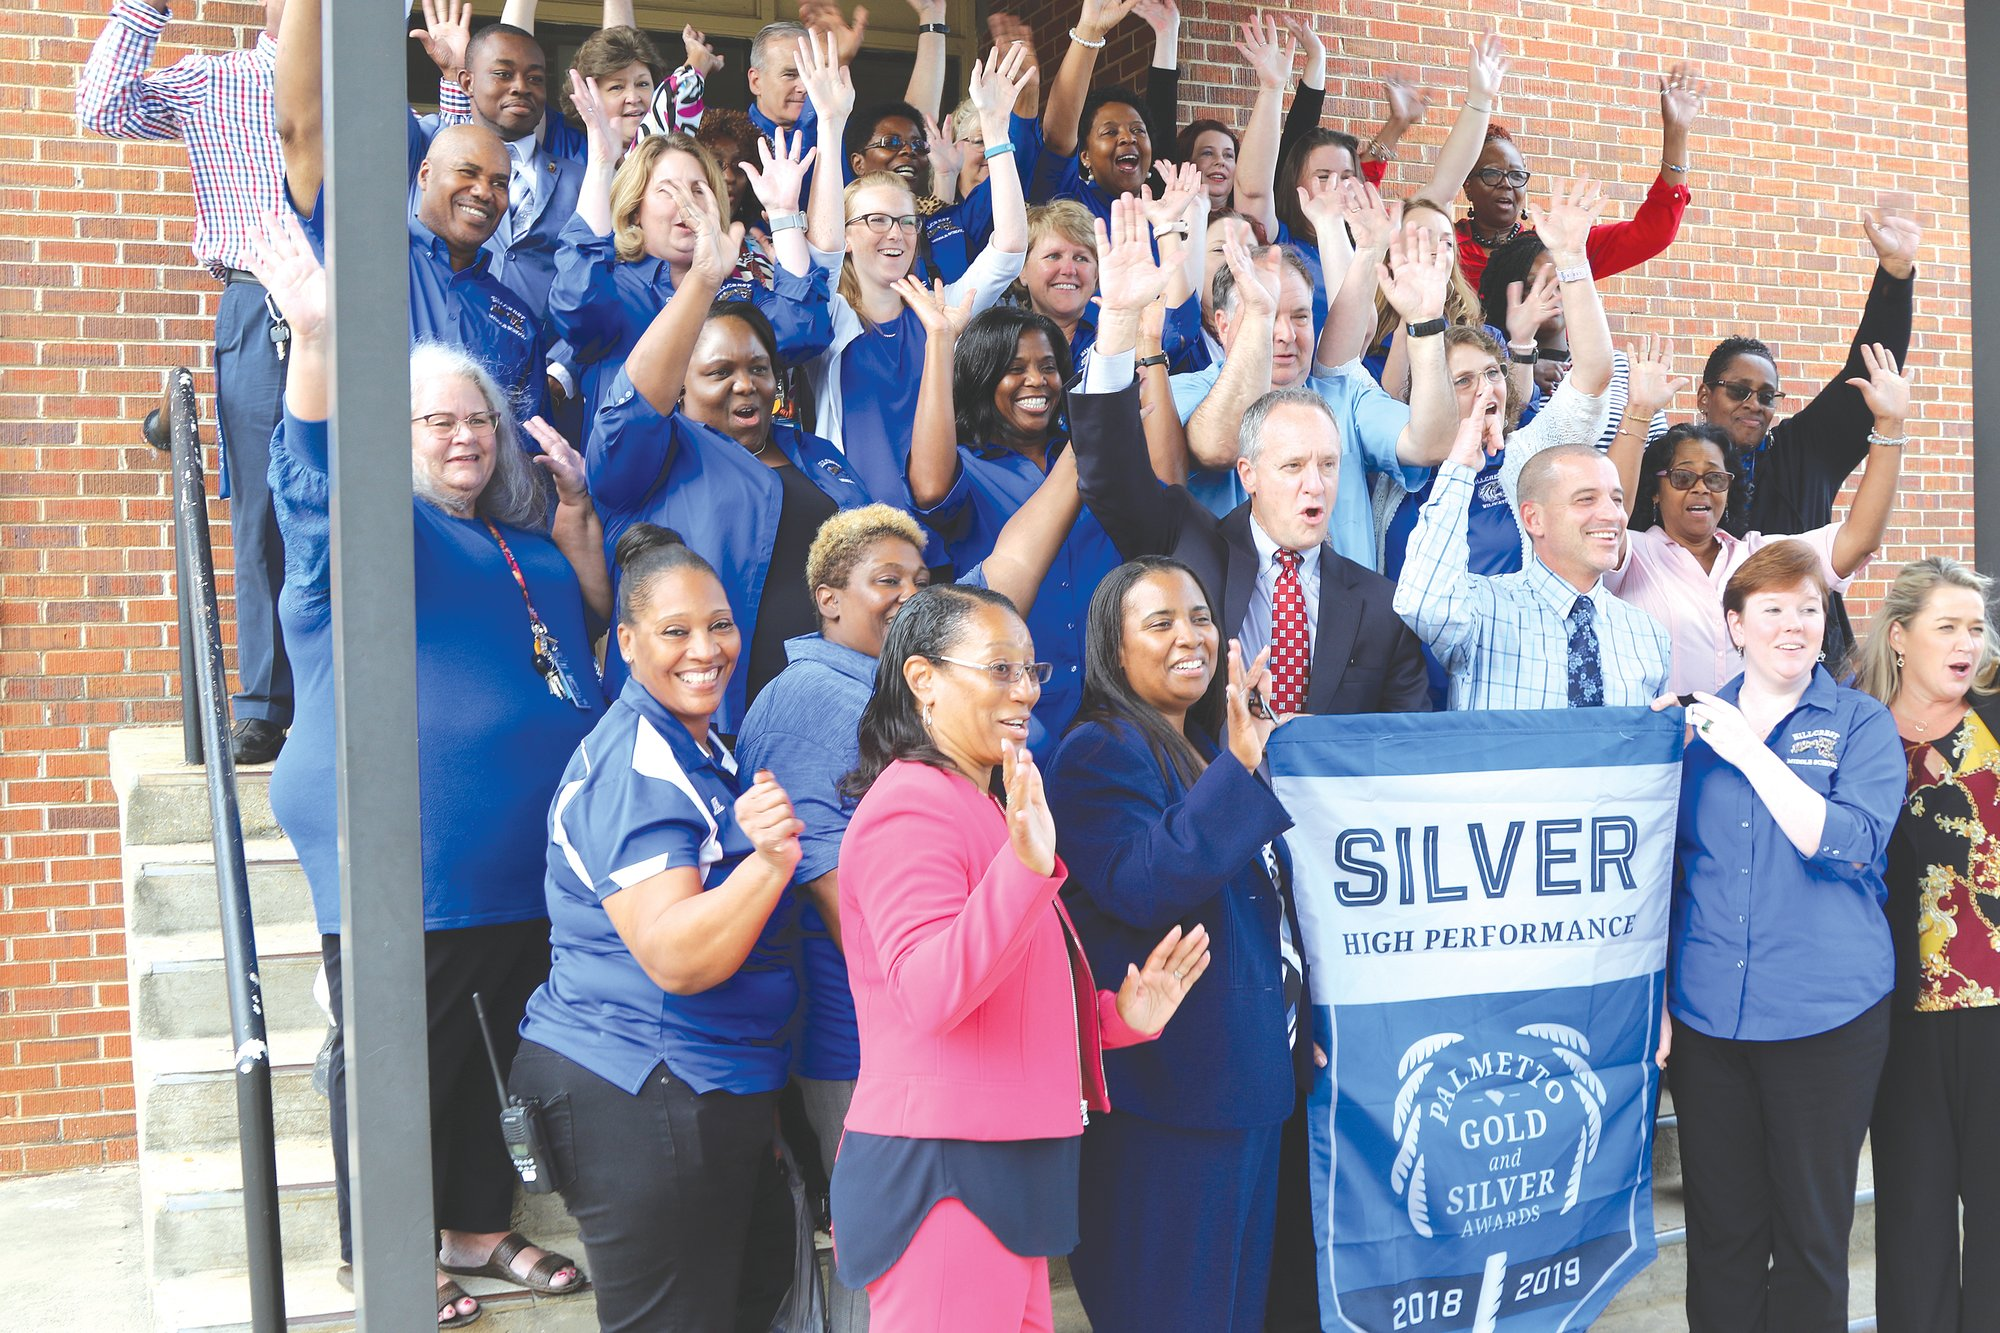 Sumter School District administrators and Hillcrest Middle School faculty and administration cheer themselves on Wednesday afternoon after receiving the school's Palmetto Silver Award banner for achievement from the state Department of Education.